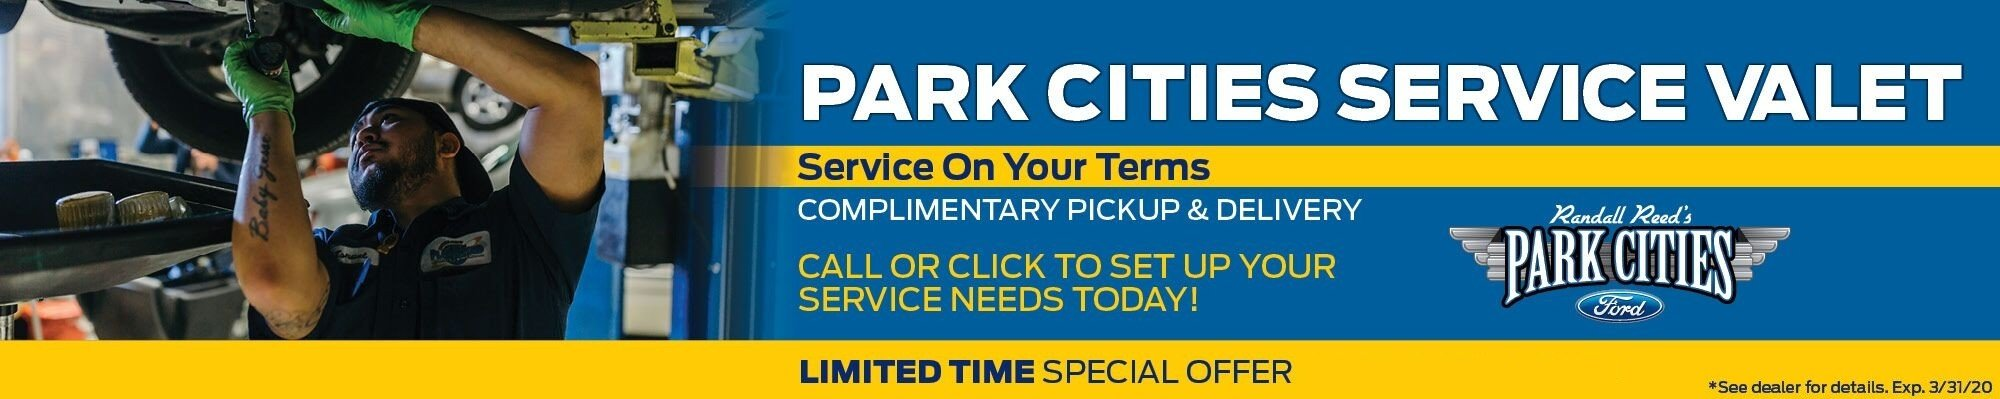 Service Valet at Park Cities Ford of Dallas - Your Dallas Ford Dealer